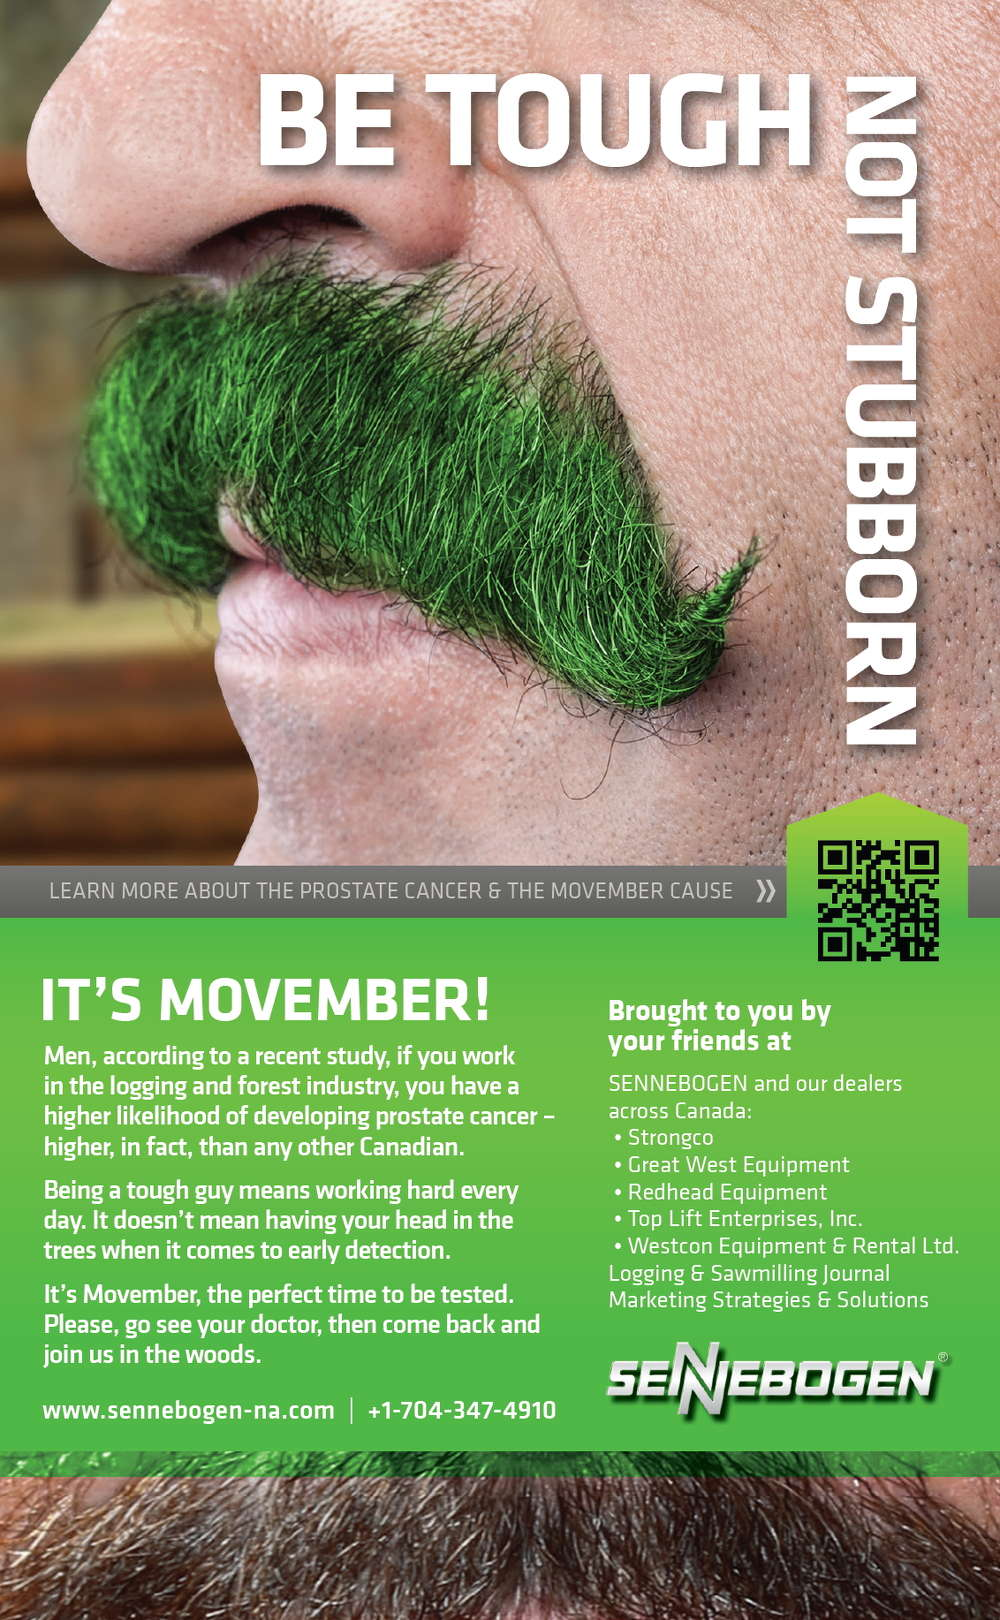 The intent of the award-winning ad developed in support of the National Movember Campaign.